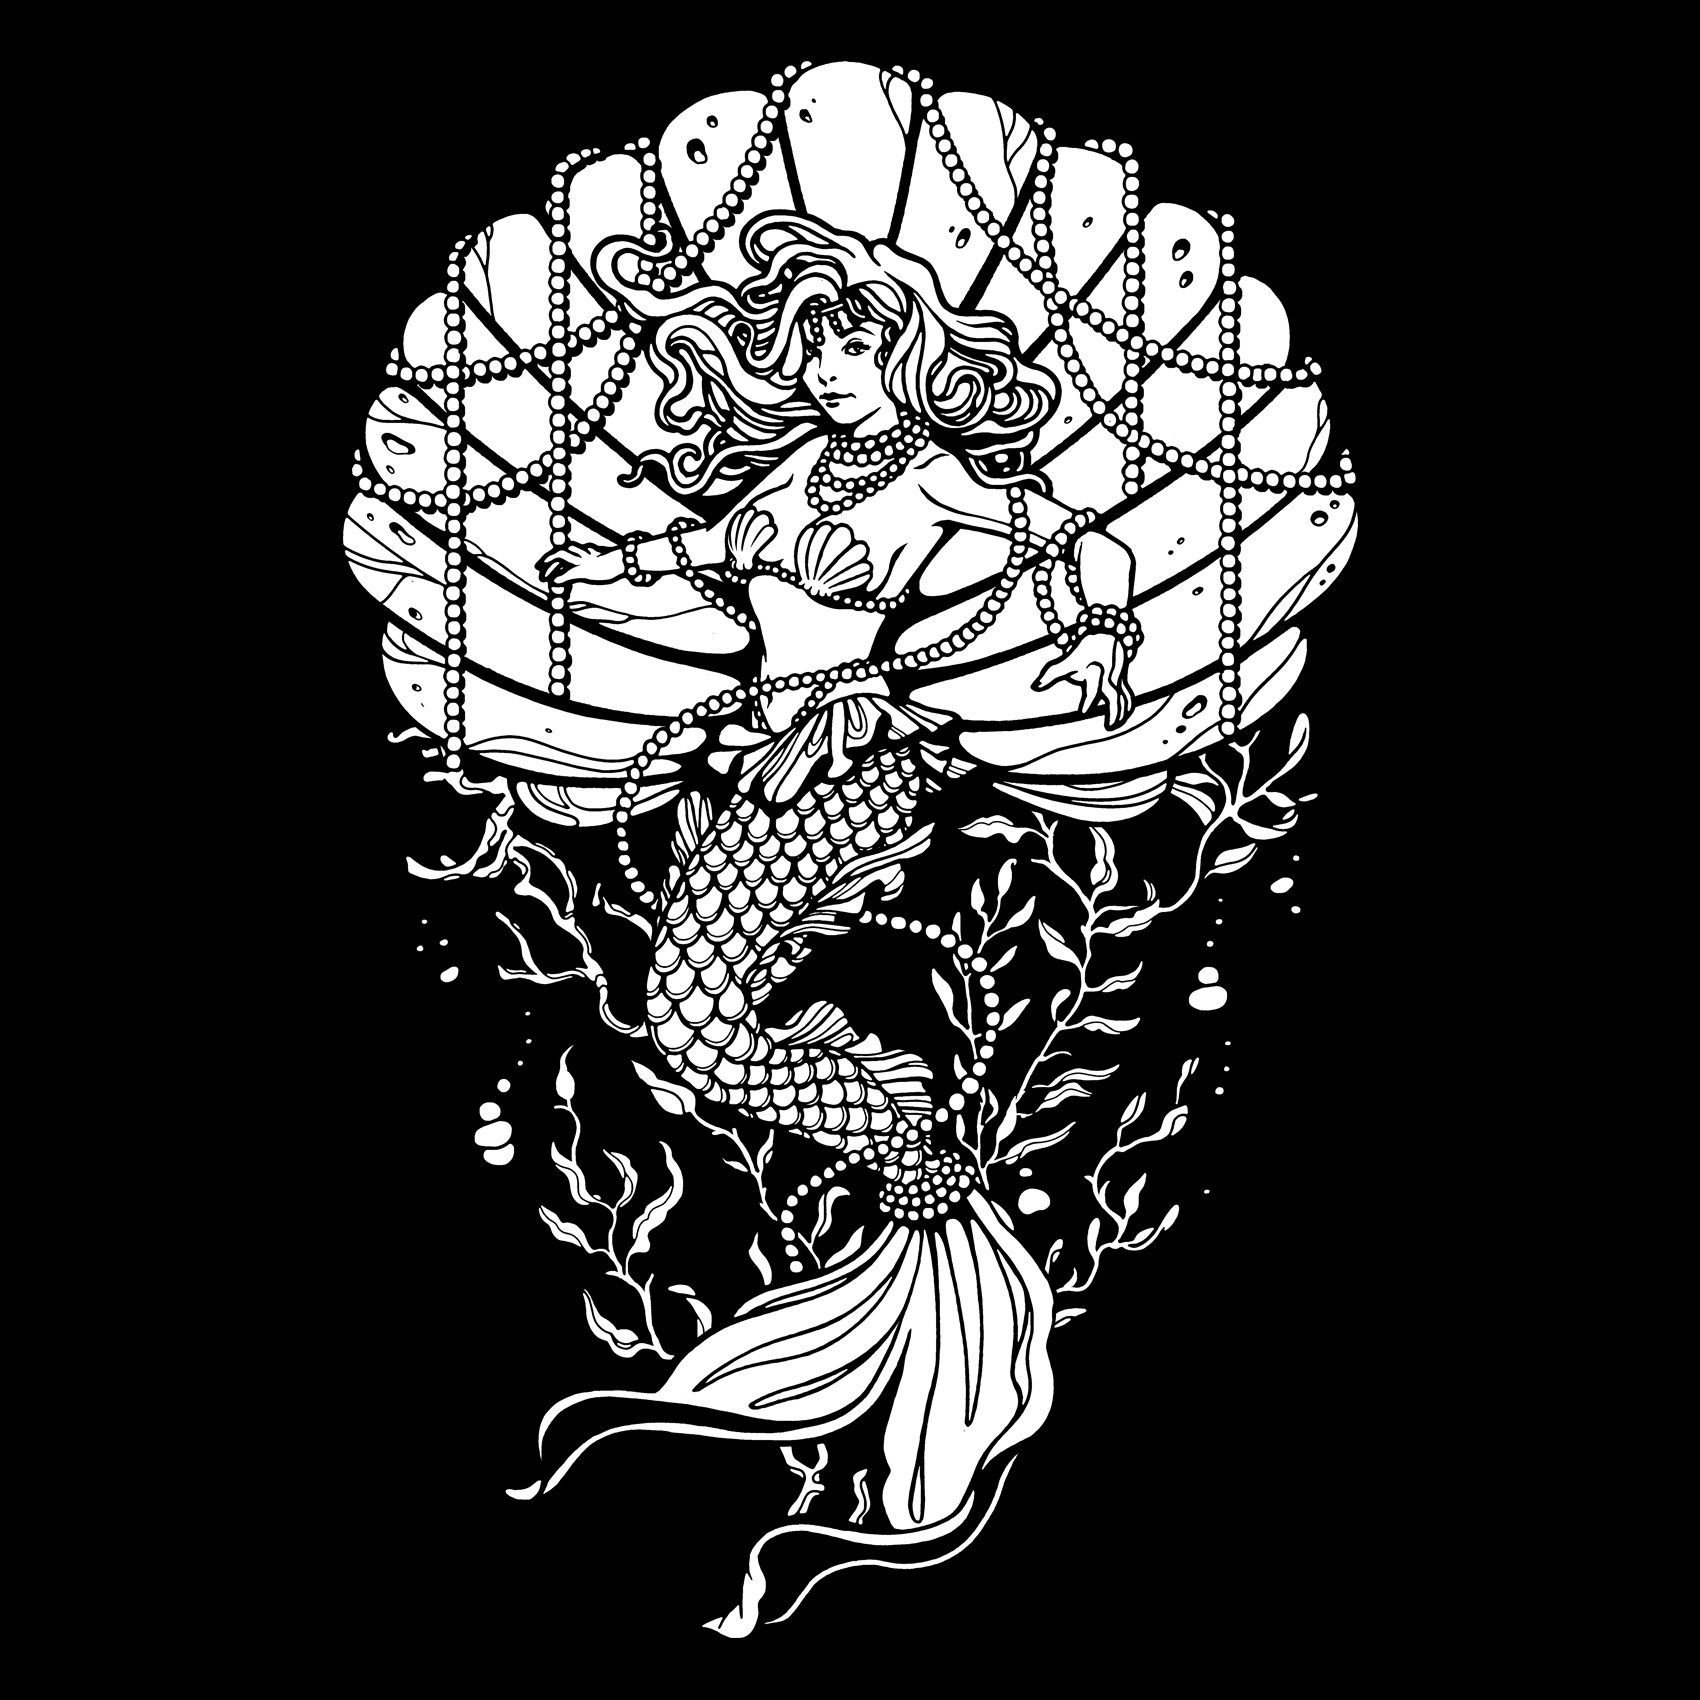 MERMAID_ART_web.jpg